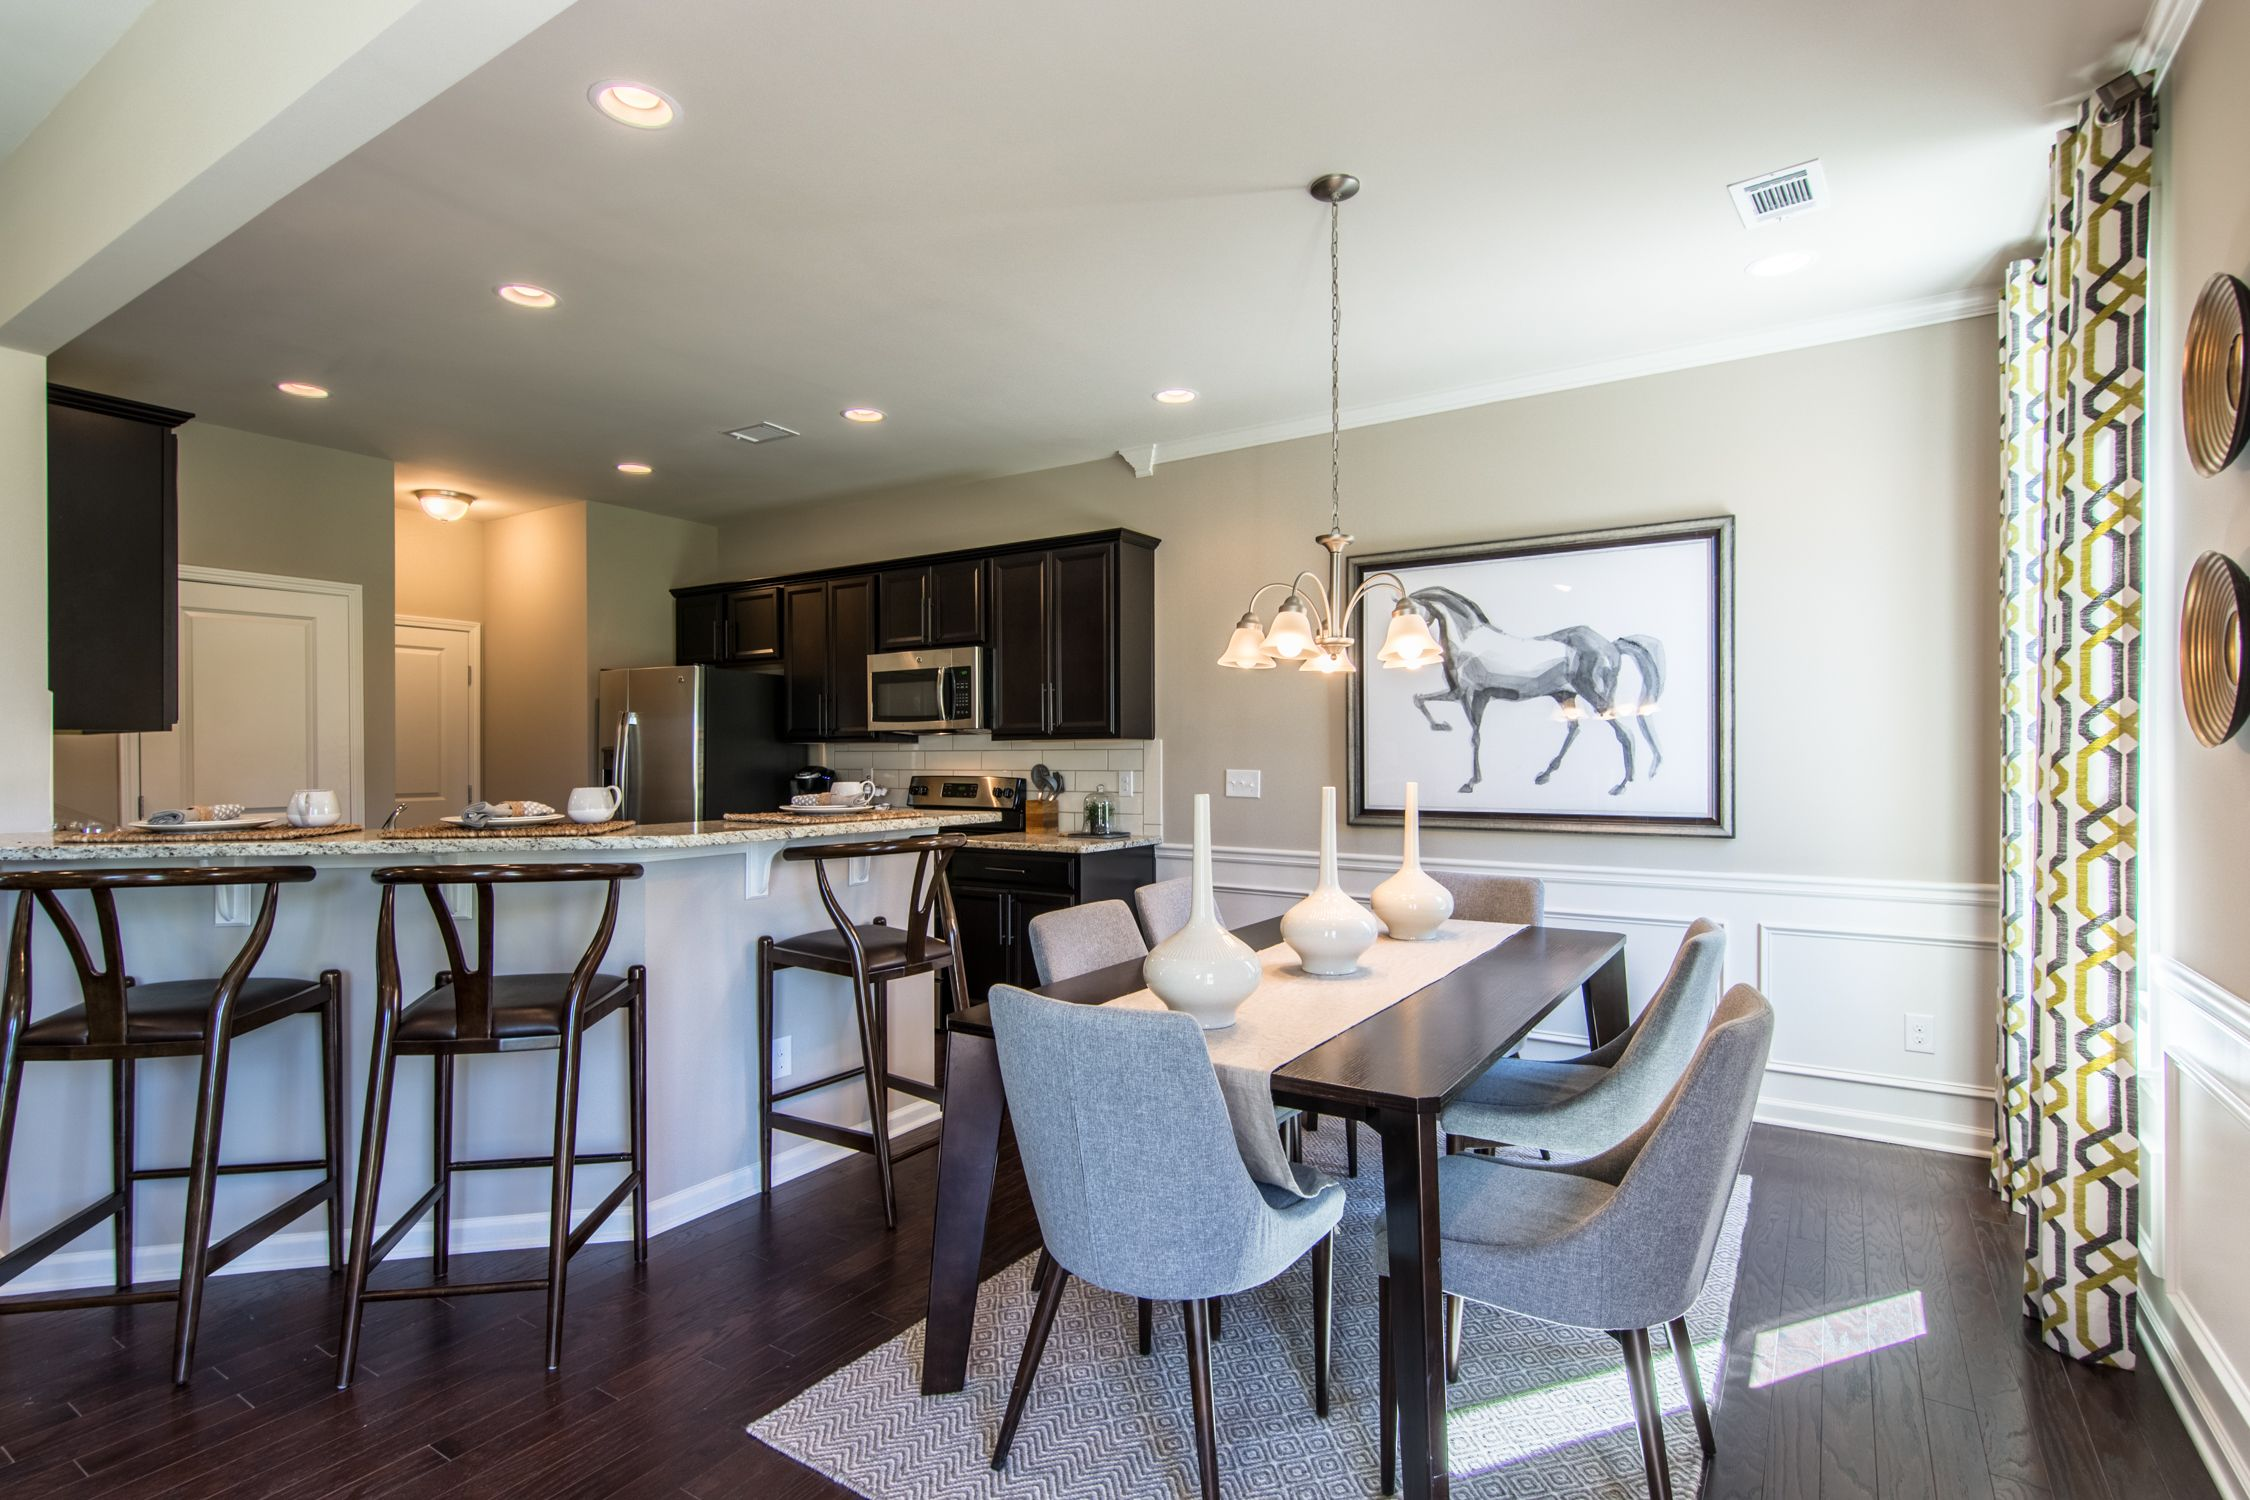 Come Home To Gorgeous Interiors That Show Off Your Sophisticated Style Lawrenceville Atl Homesforsale New Homes Bedroom Floor Plans House Design